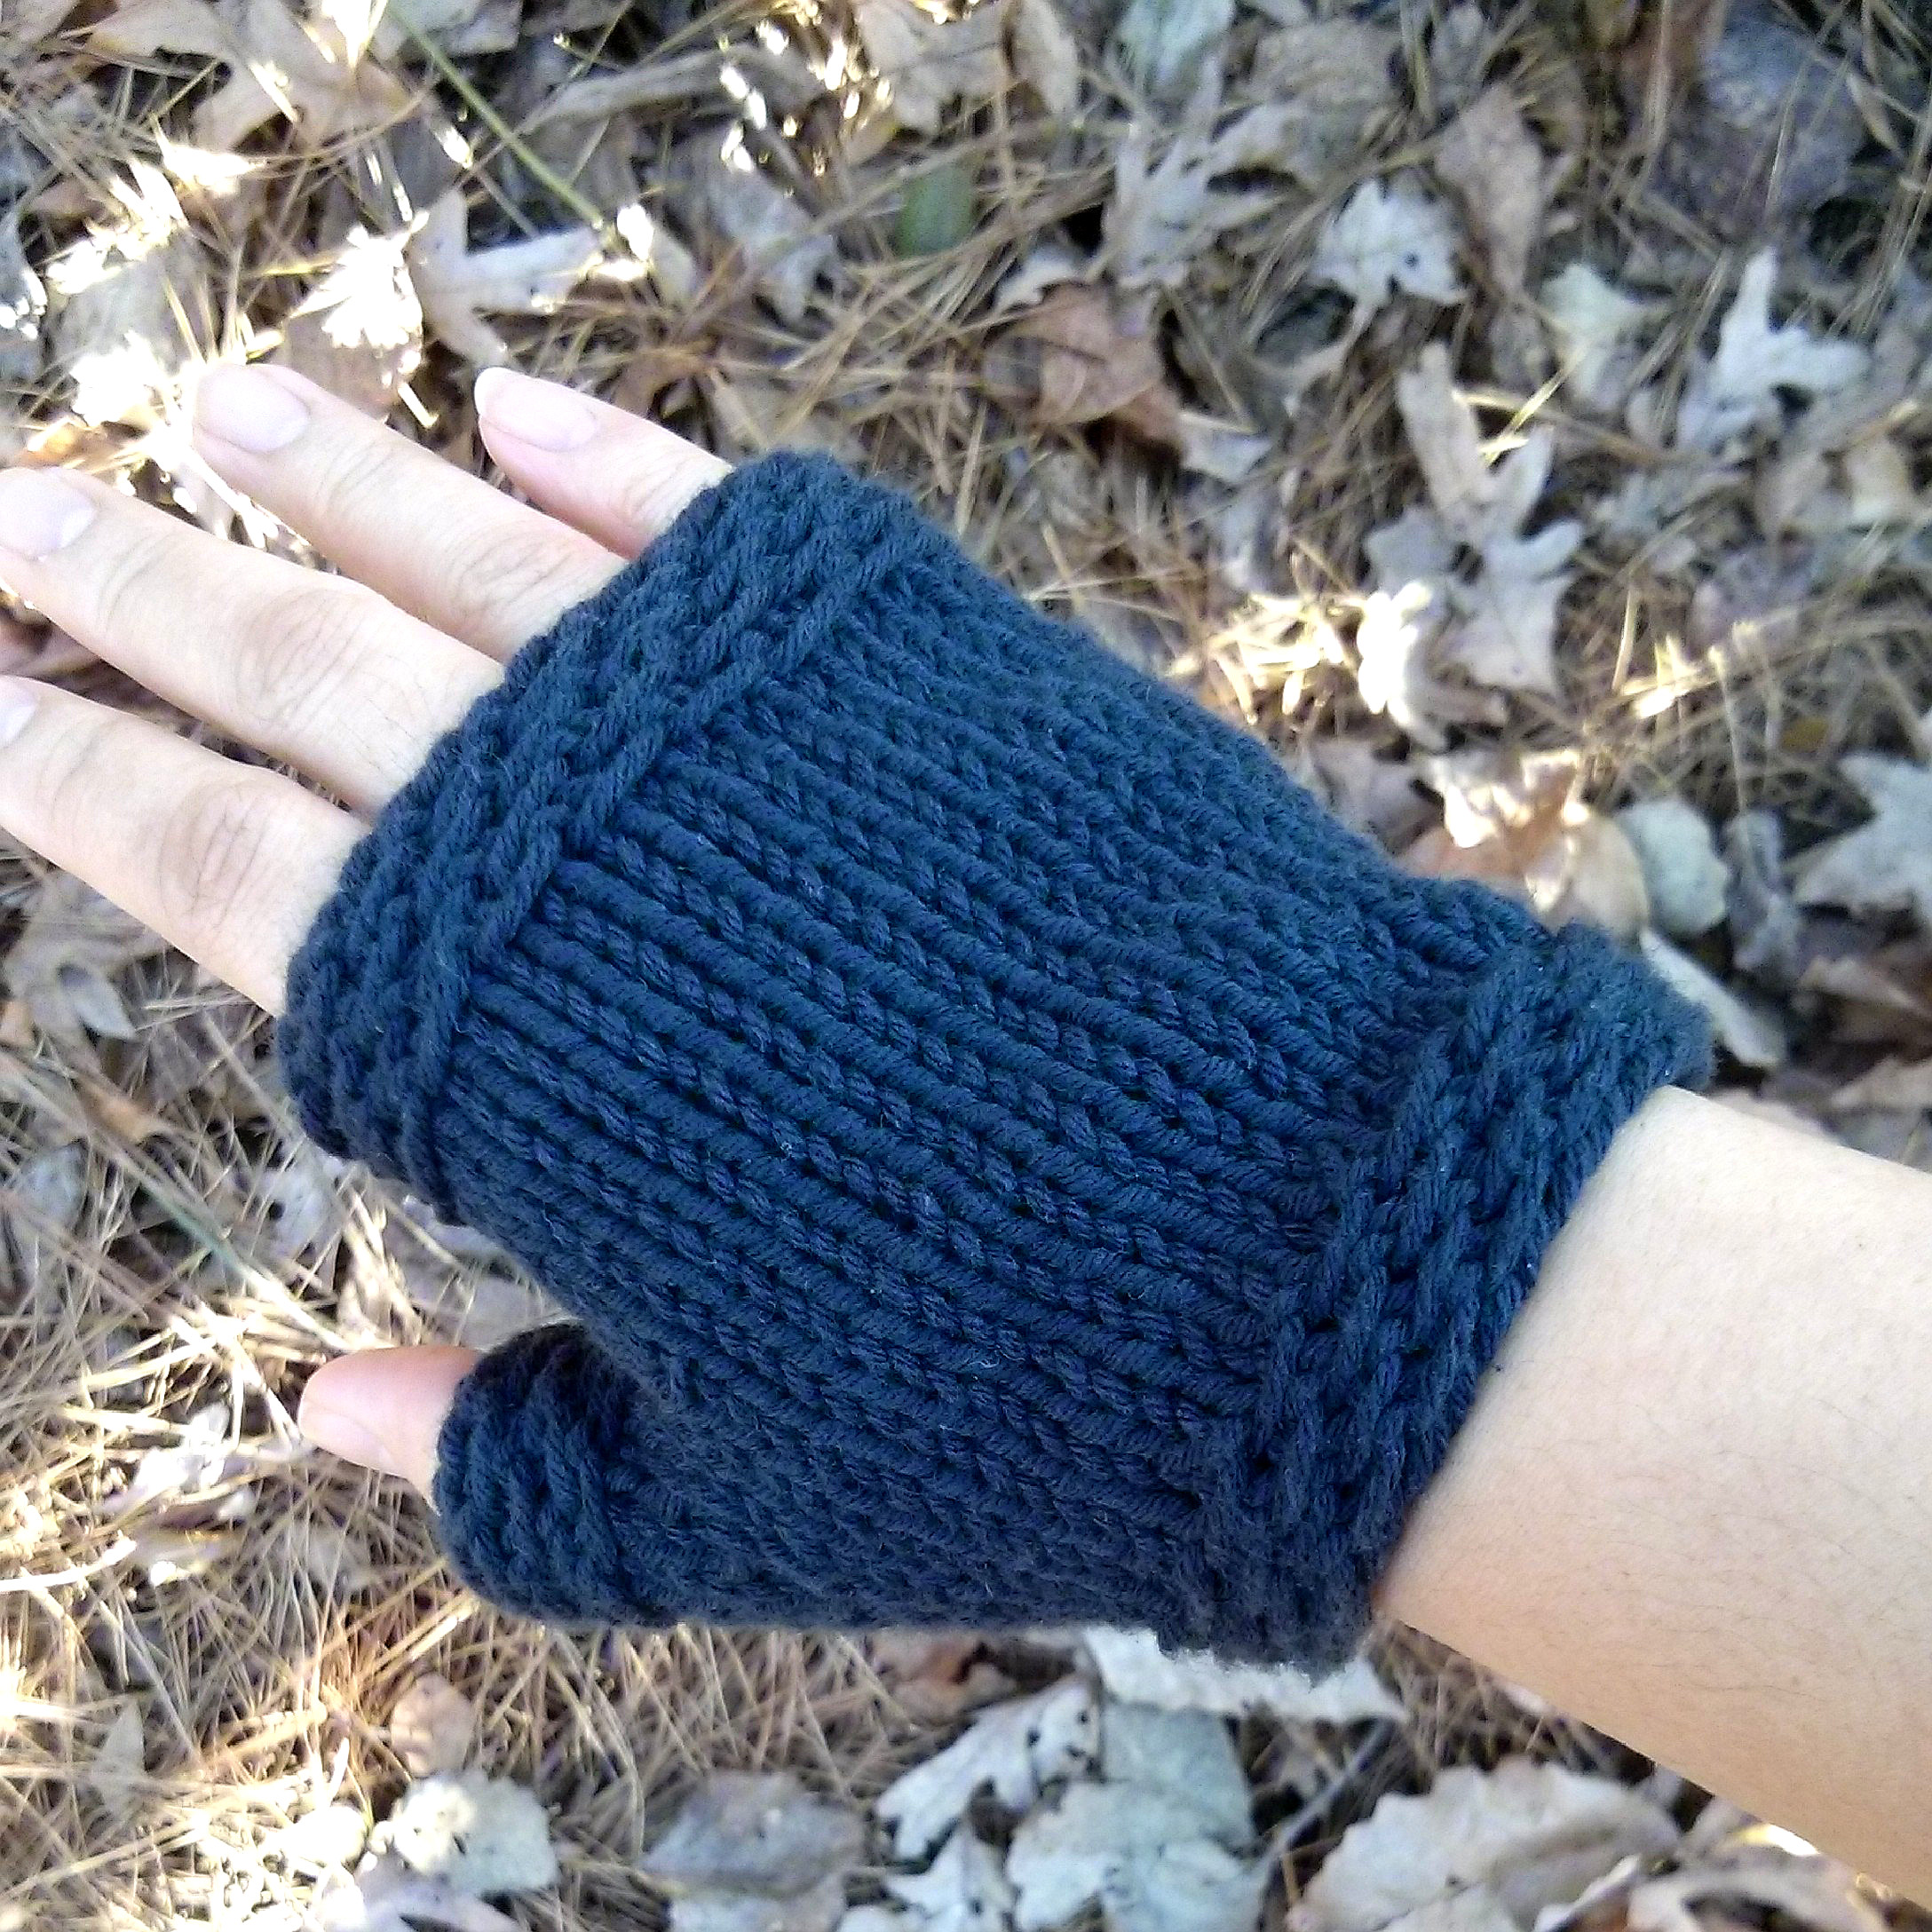 Knitting Pattern Of Gloves : Easy Knit Fingerless Gloves - Purl Avenue